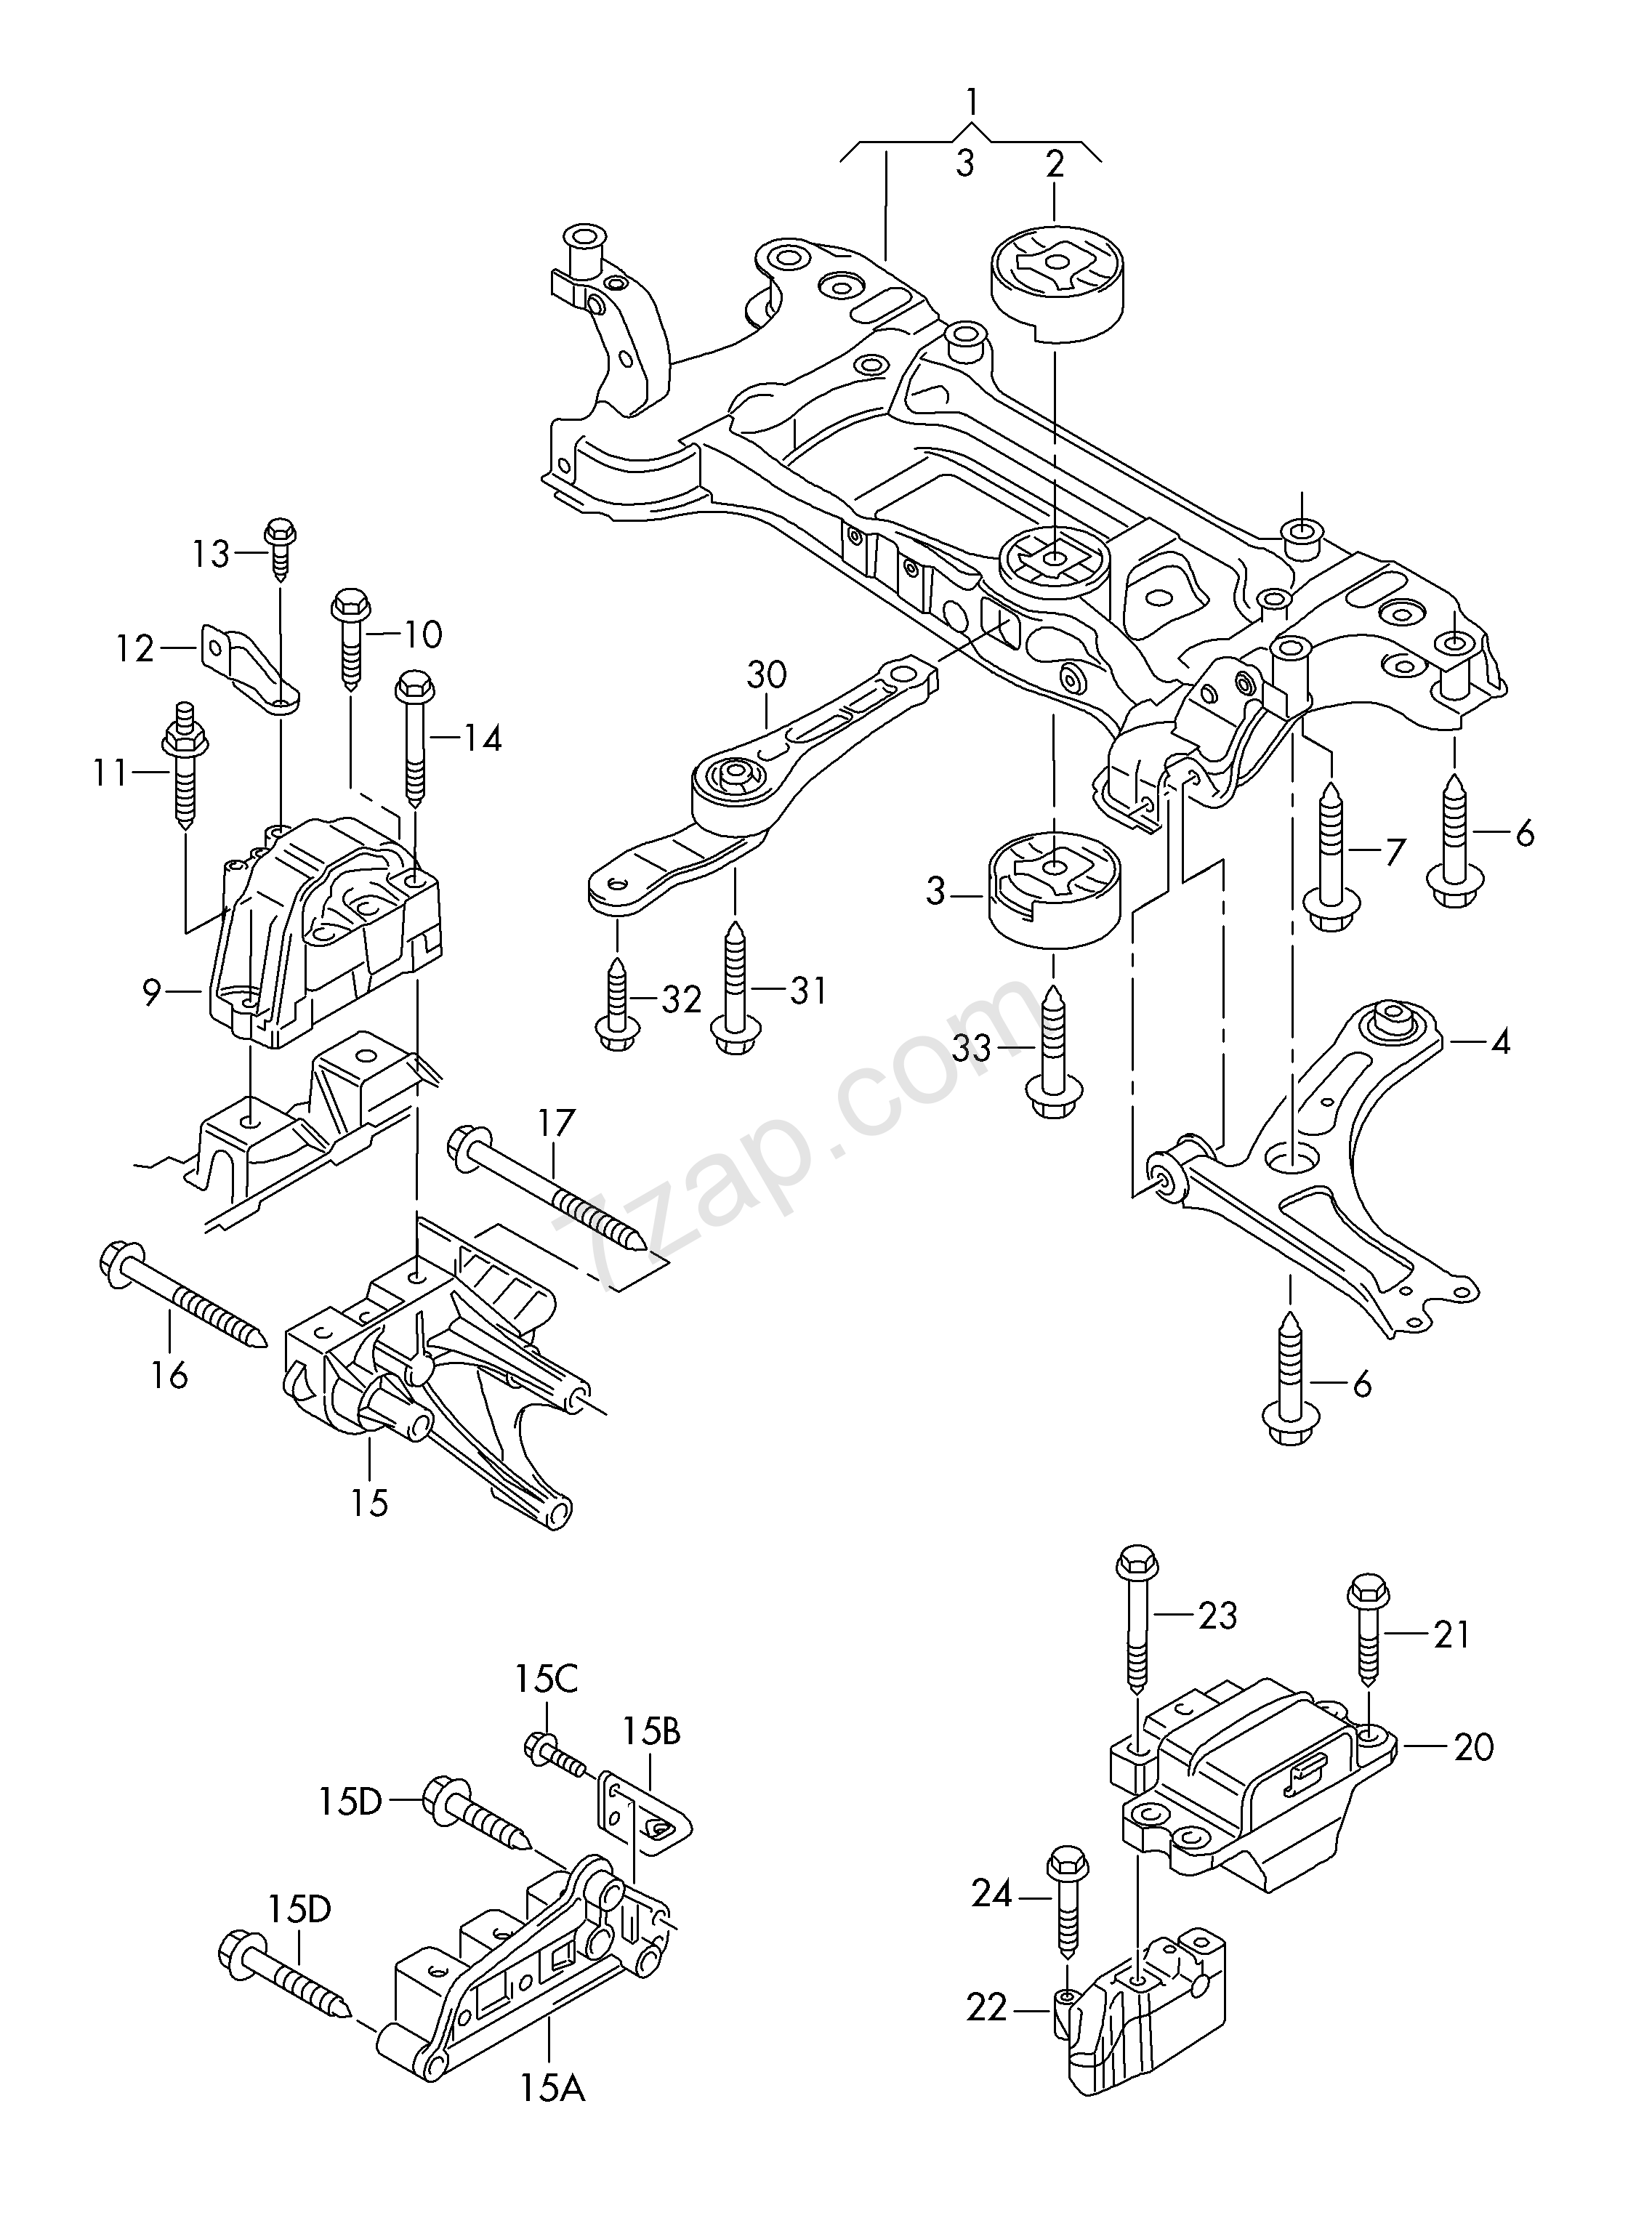 Skoda Transmission Diagrams Electrical Wiring Engine Mounting Parts For And D Octavia Oct 2011 Drive Shaft Diagram